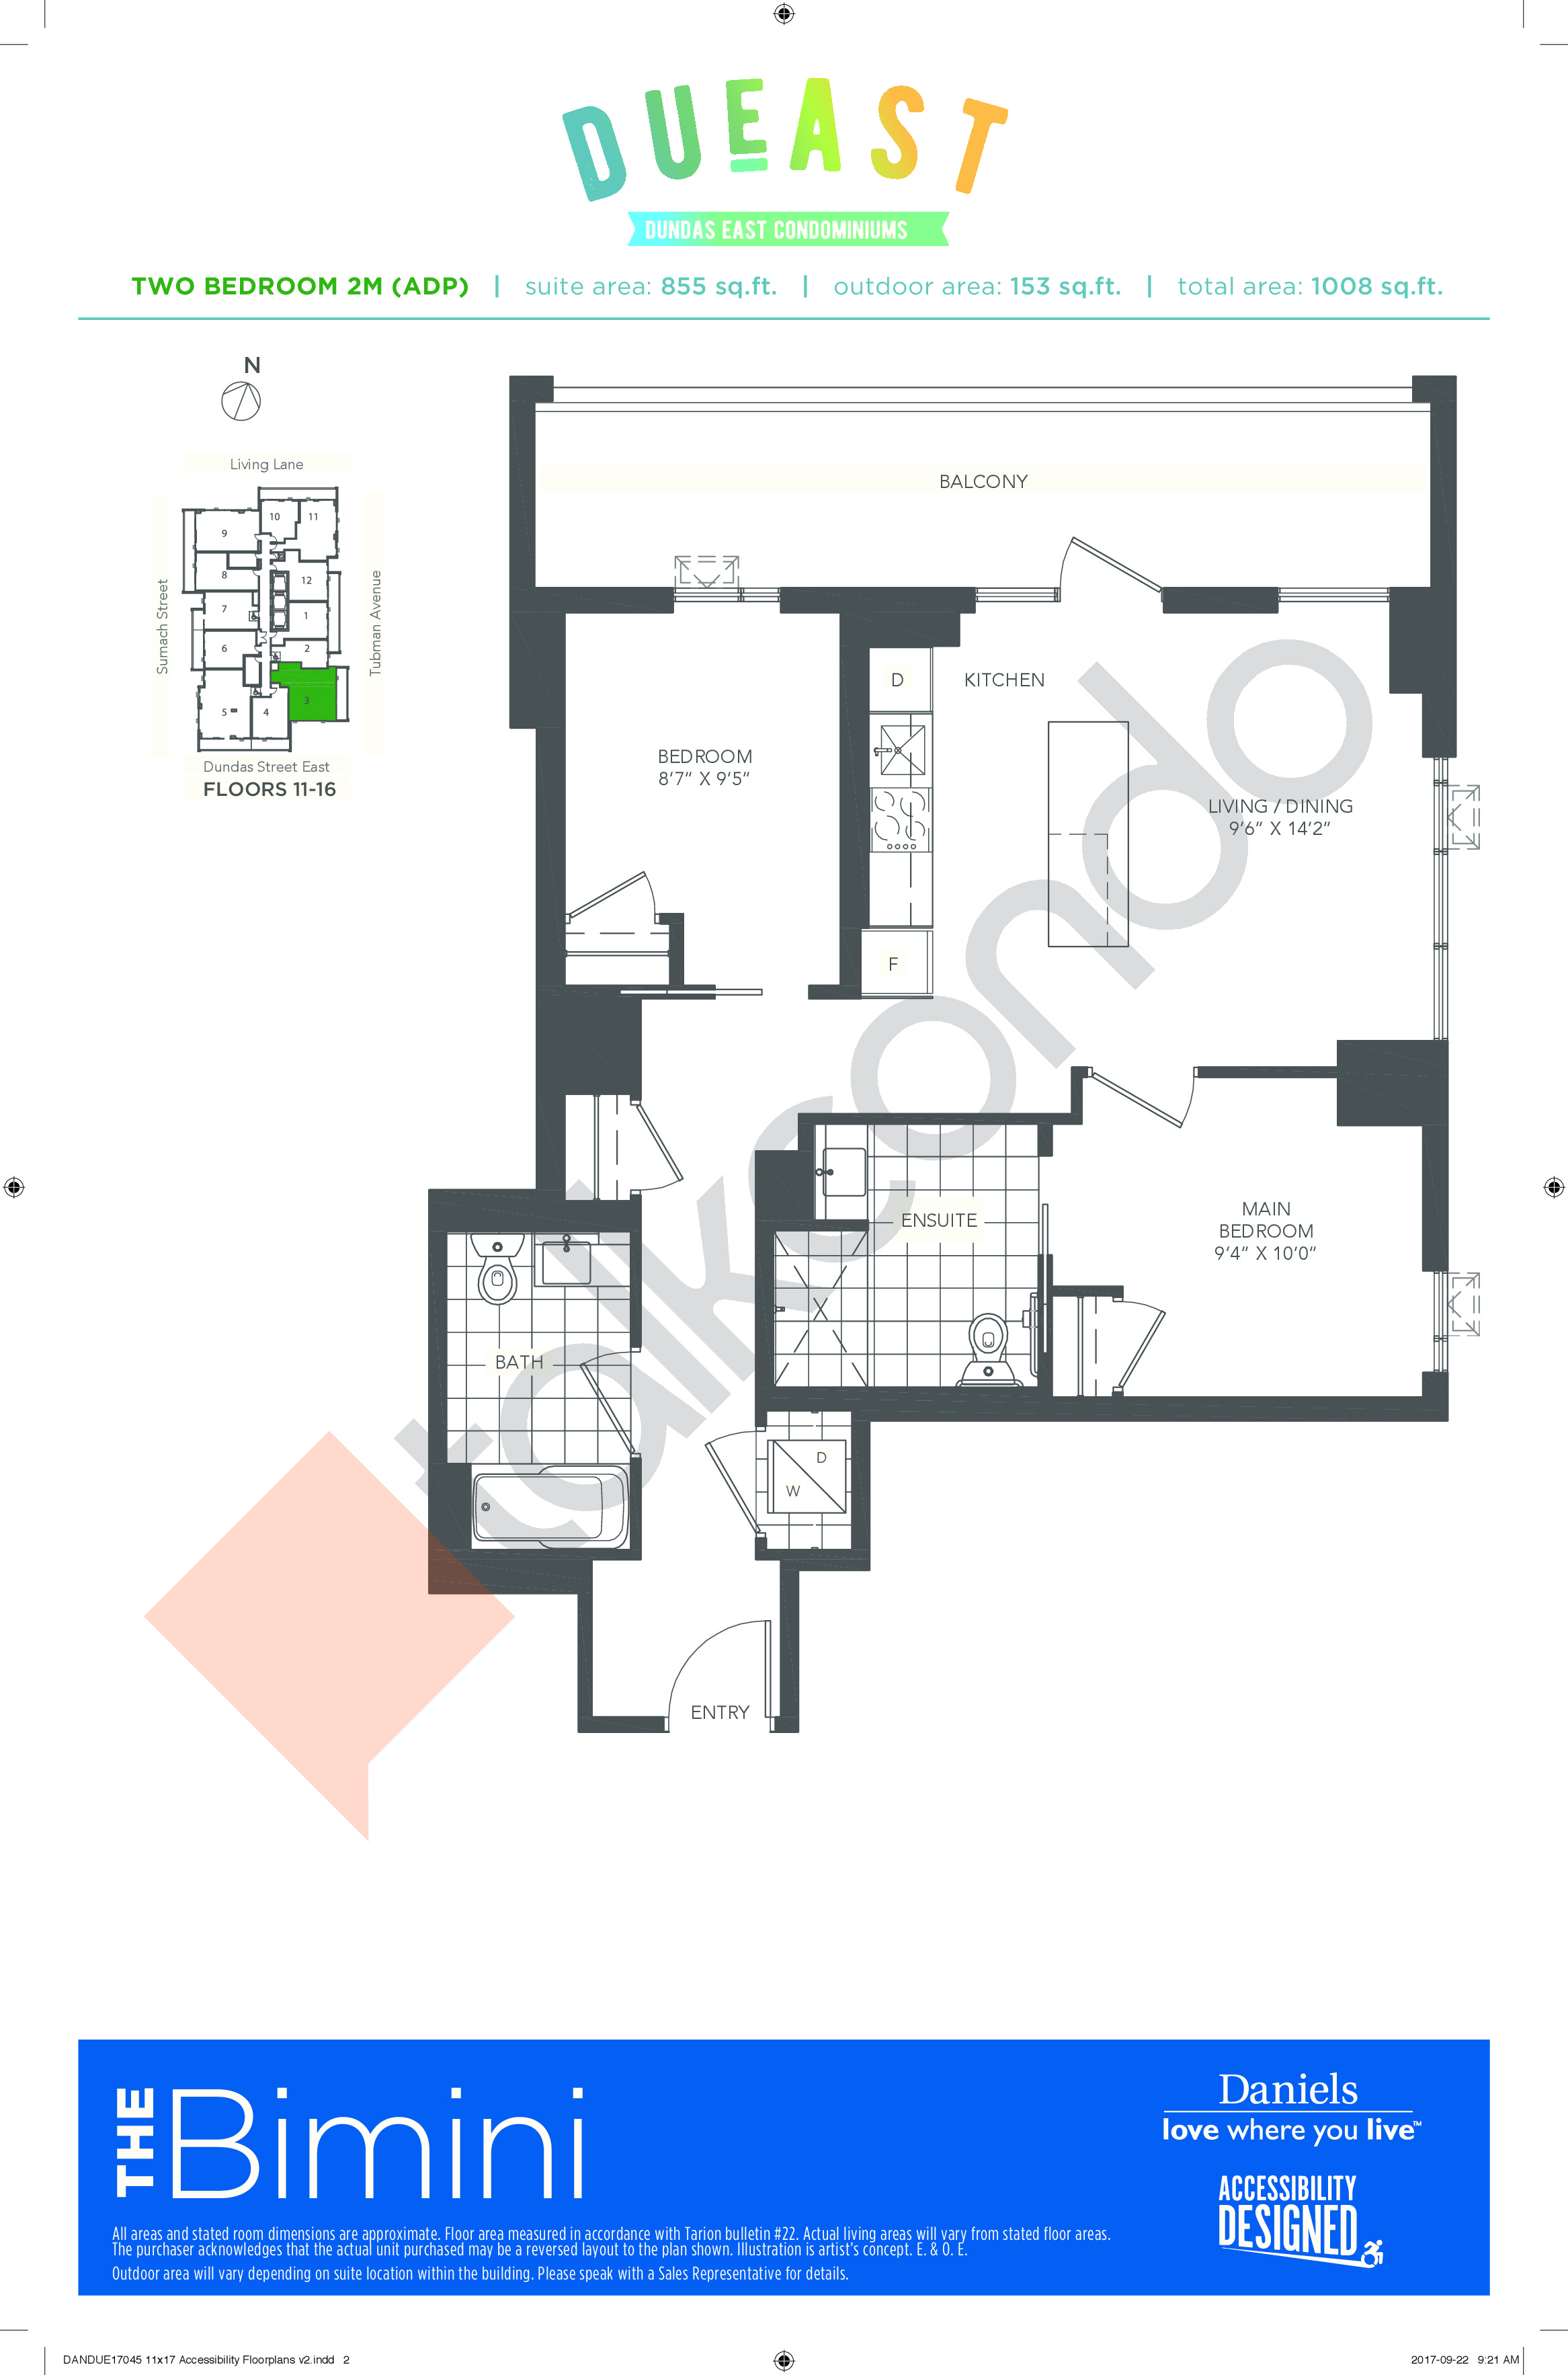 The Bimini 2M (ADP) Floor Plan at DuEast Condos - 855 sq.ft